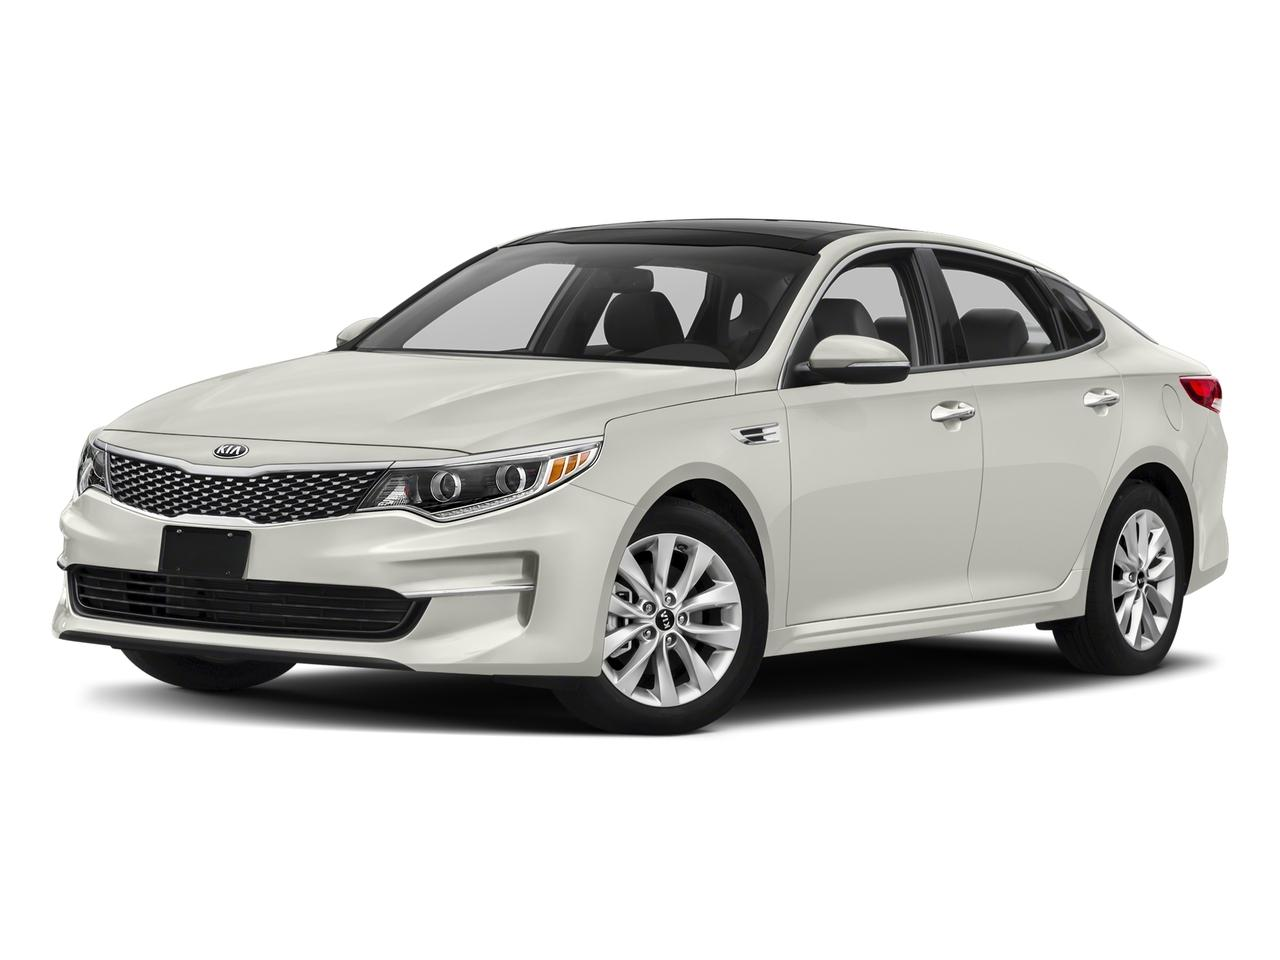 2017 Kia Optima Vehicle Photo in Trevose, PA 19053-4984